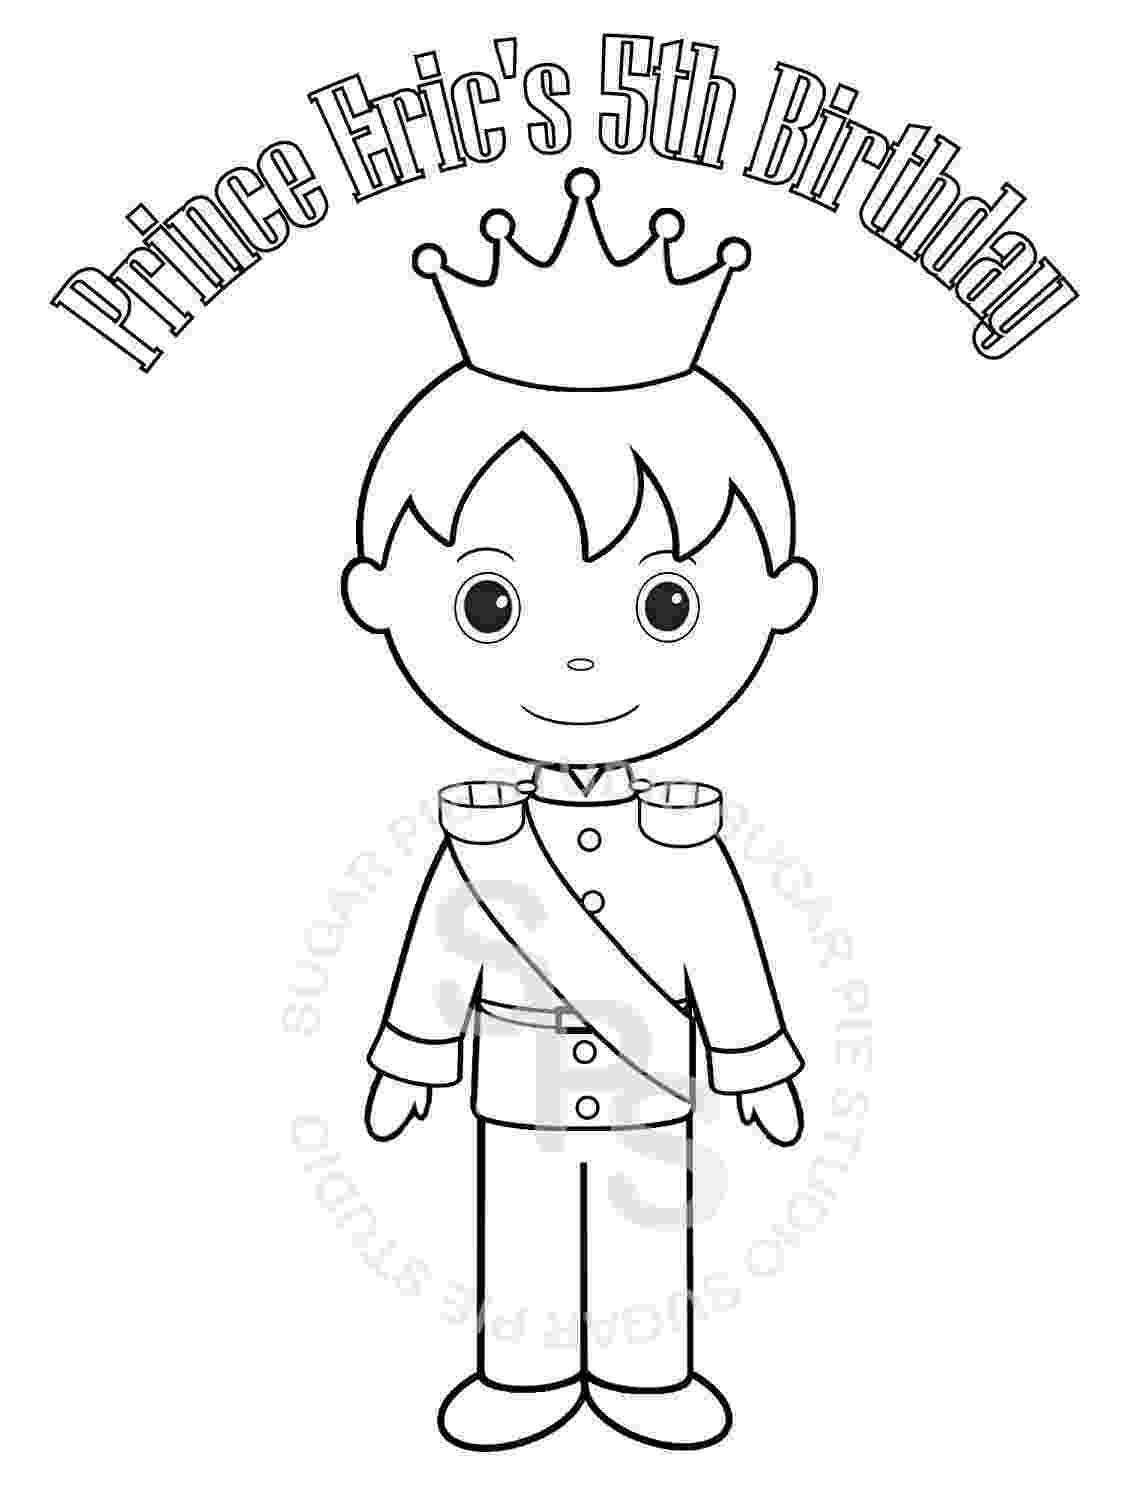 prince colouring personalized printable princess prince knight birthday party prince colouring